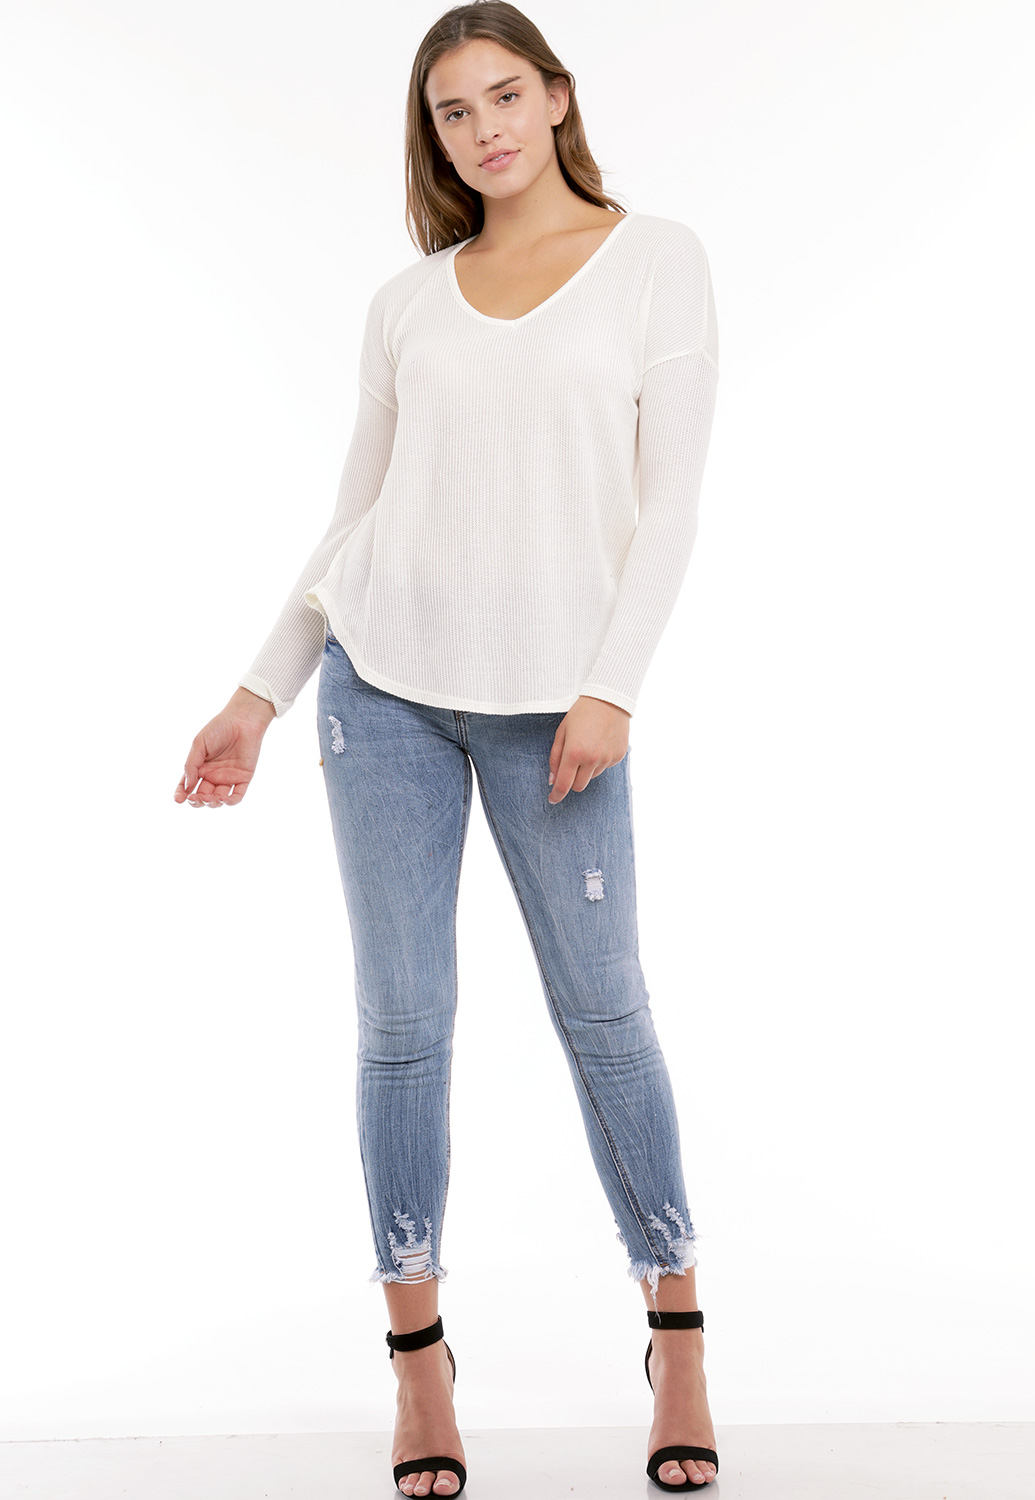 V-Neck Long Sleeve Knit Top